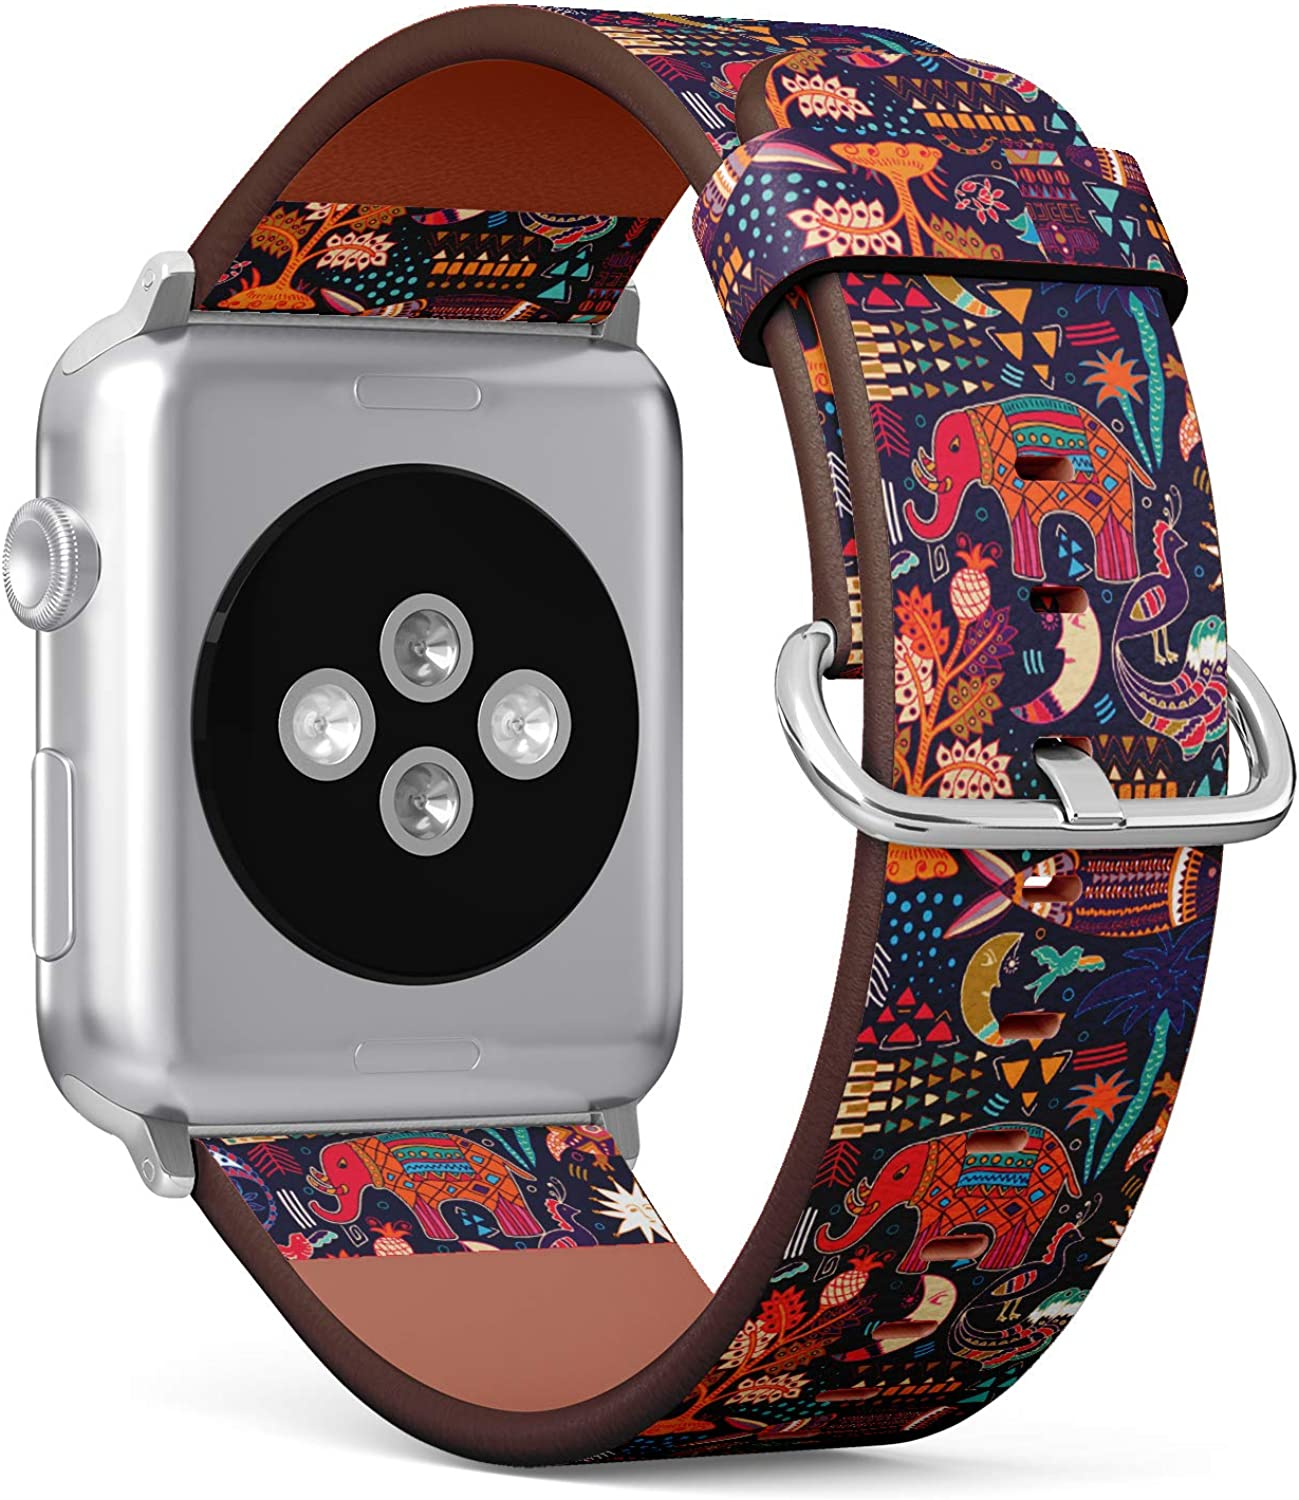 (Hand Drawn Tribal Pattern with Decorative Elephant Fish Moon and Geometric Elements) Patterned Leather Wristband Strap for Apple Watch Series 4/3/2/1 gen,Replacement for iWatch 38mm / 40mm Bands